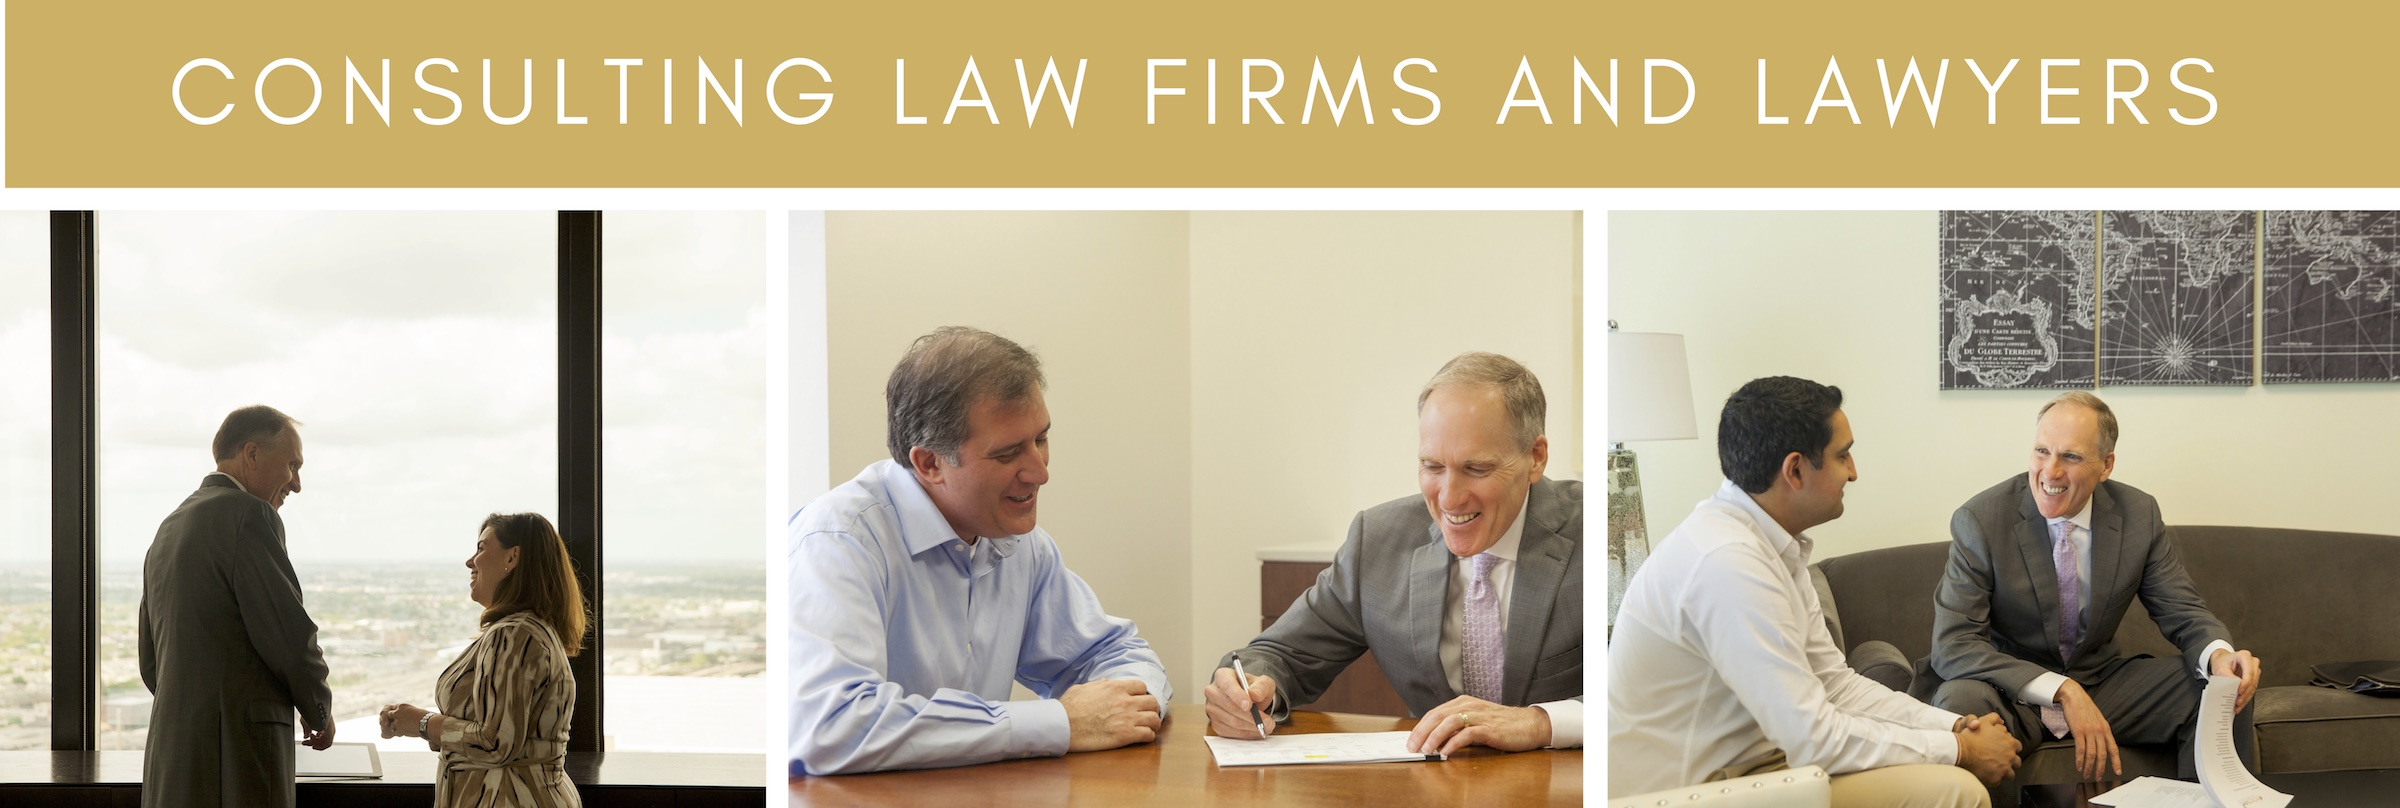 Law_Firm_Consultant_Banner_PerformLaw_.jpg